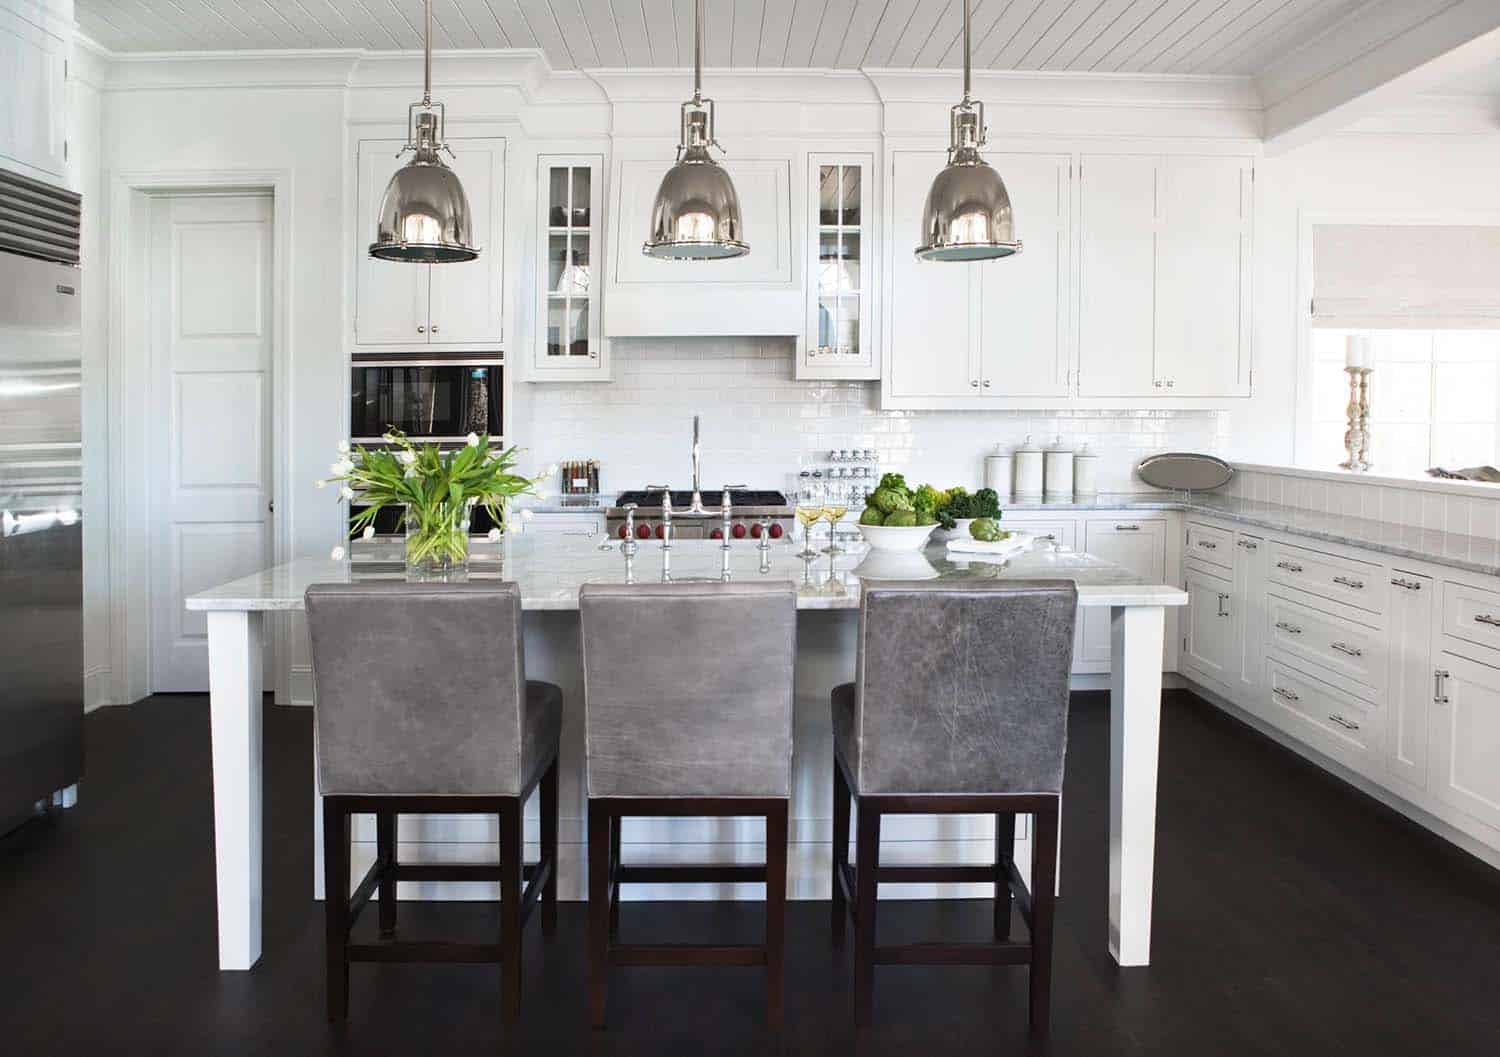 Breathtaking Carrara Marble Kitchens-21-1 Kindesign